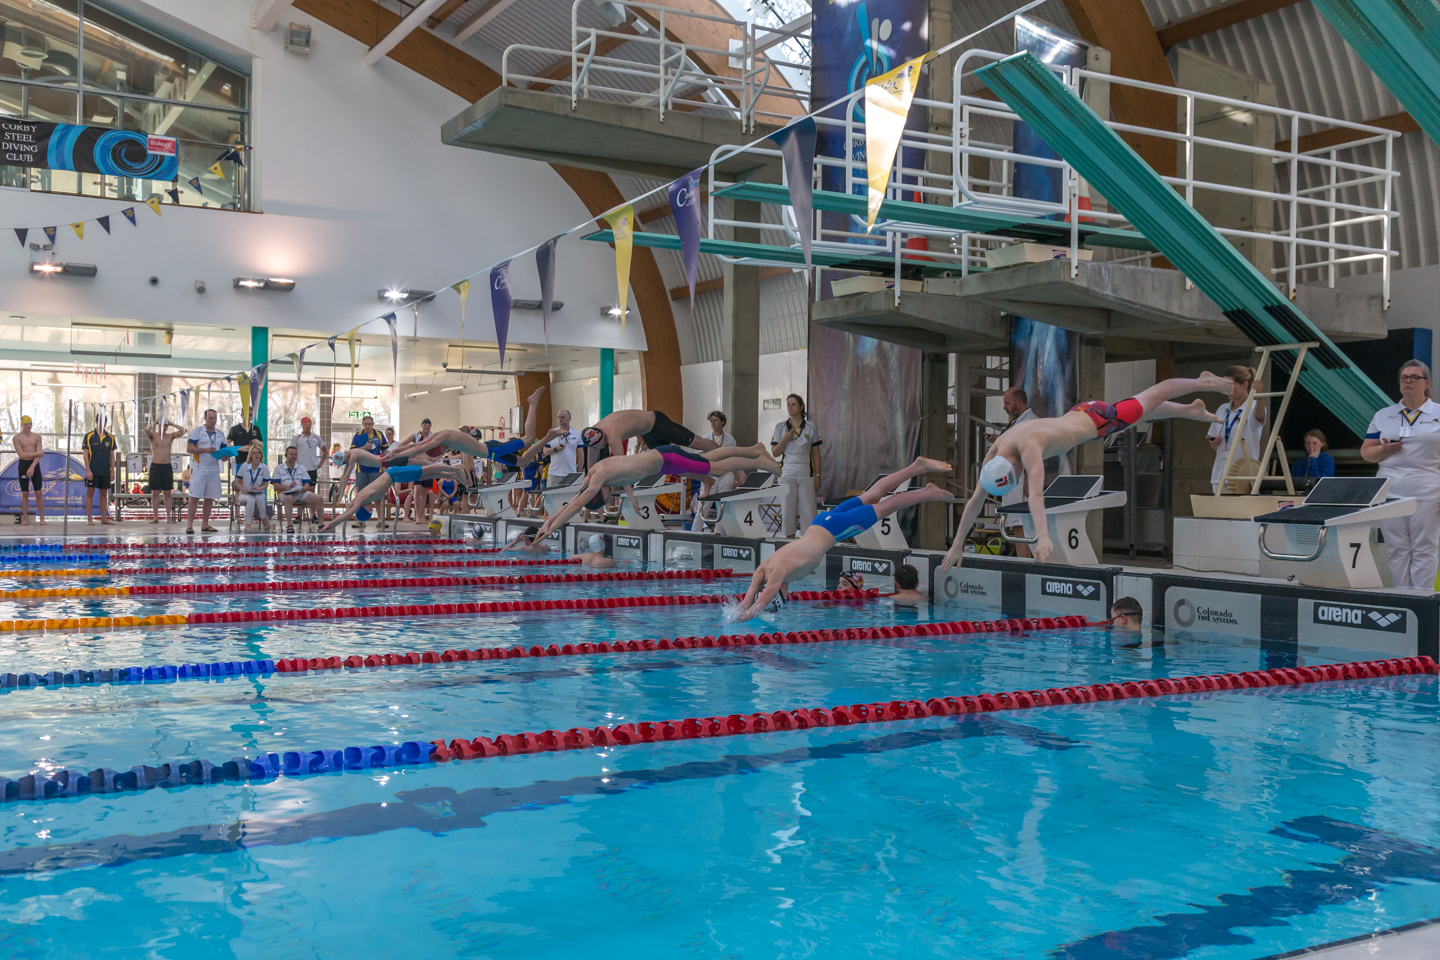 Gallery corby amateur swimming club for Corby international swimming pool